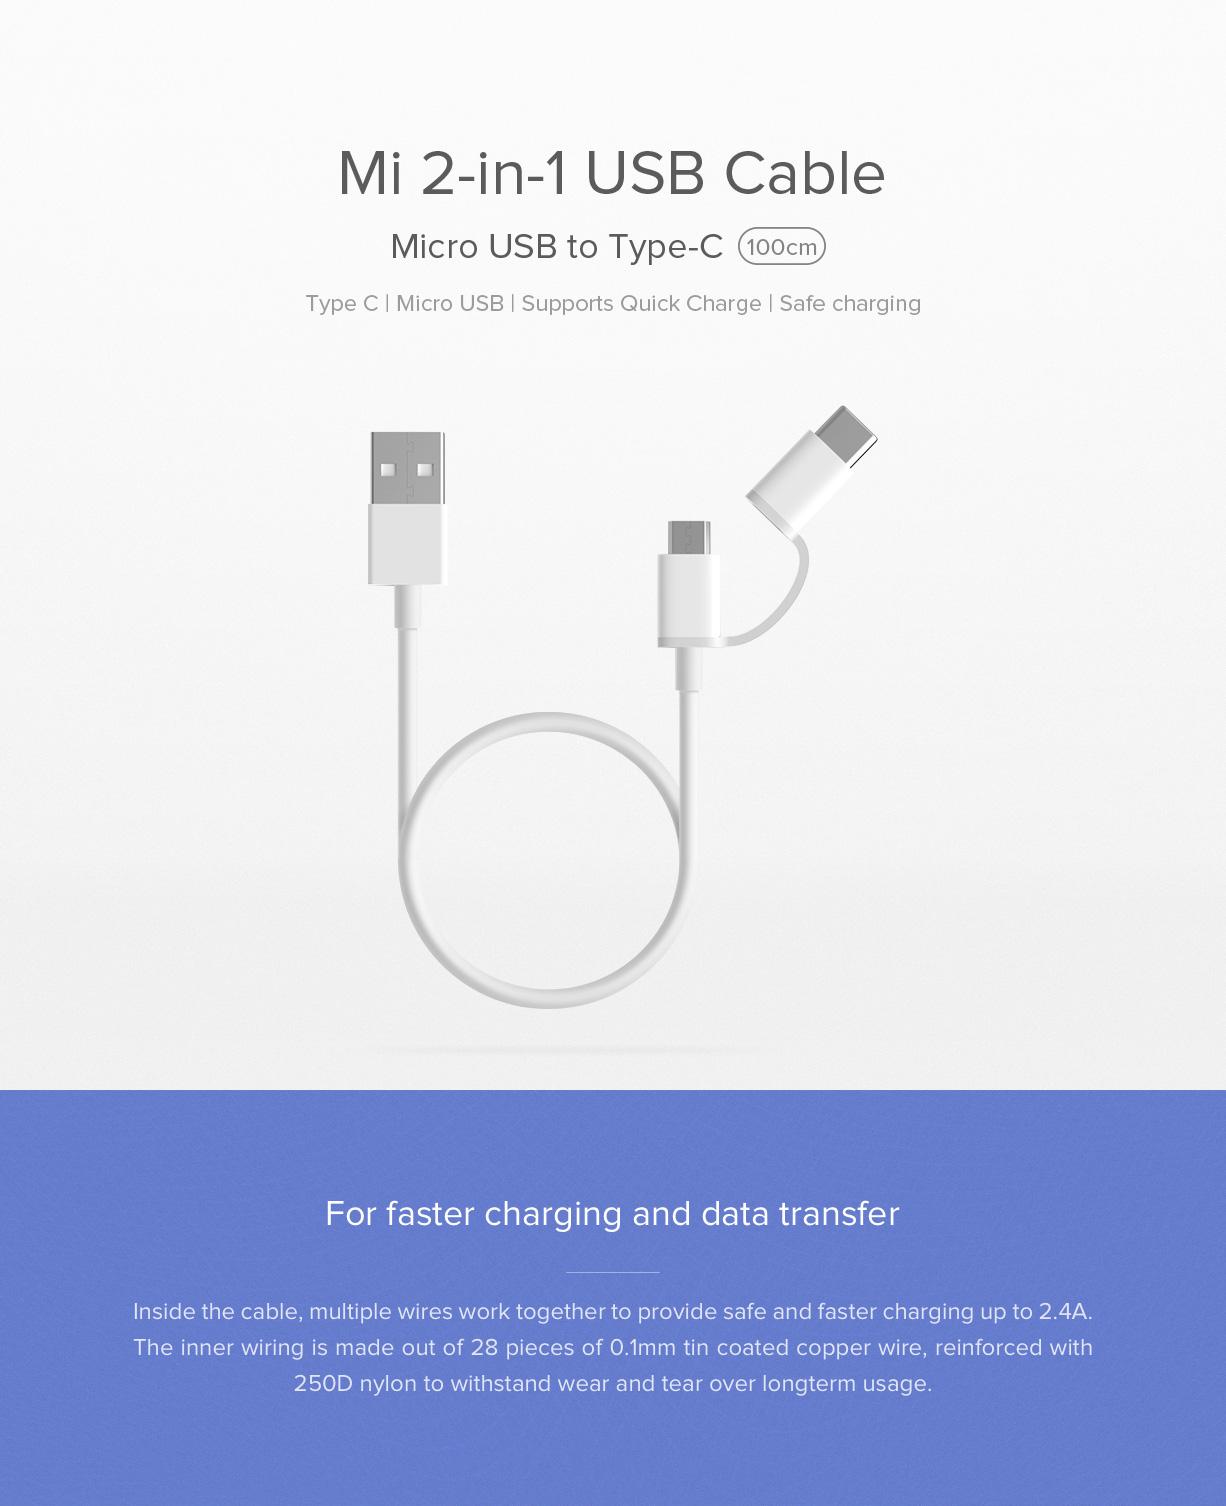 Mi 2-in-1 USB Cable - Chargers & Cables - Mi India